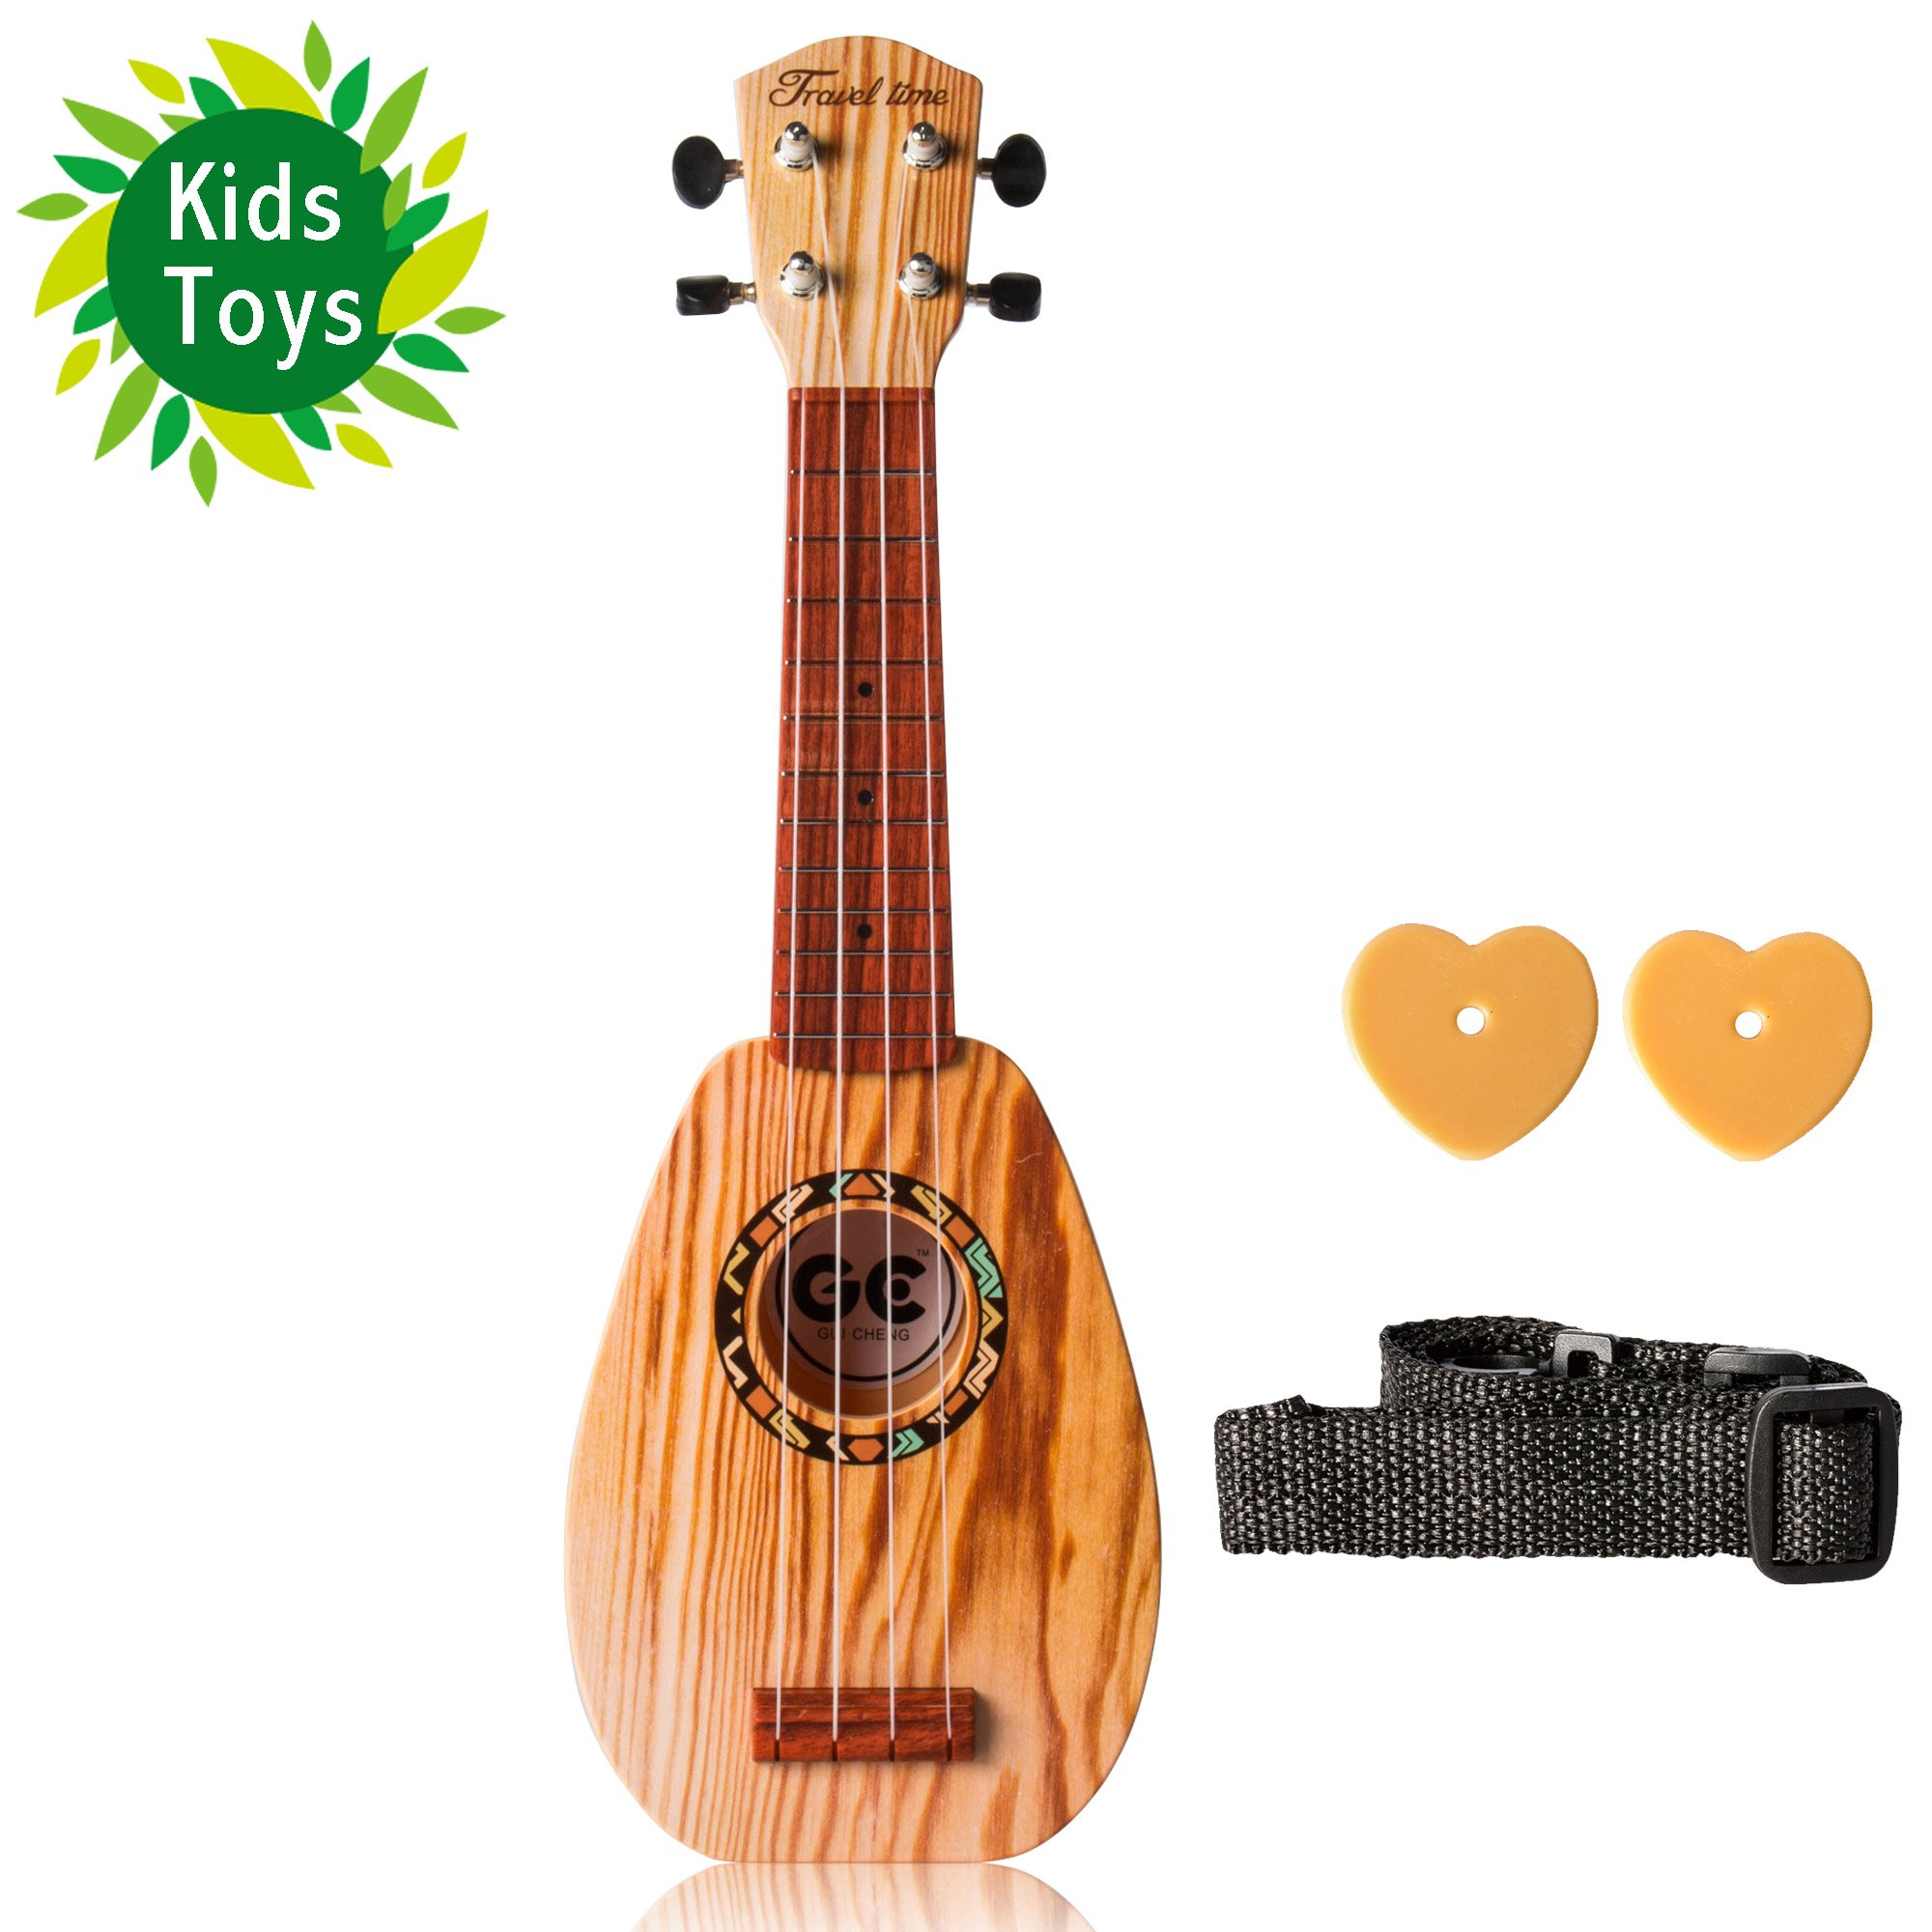 Soprano Ukulele 17-inch Acoustic Toy Guitar for Kids With the Picks, Strap and in wood Color by UKUALAA